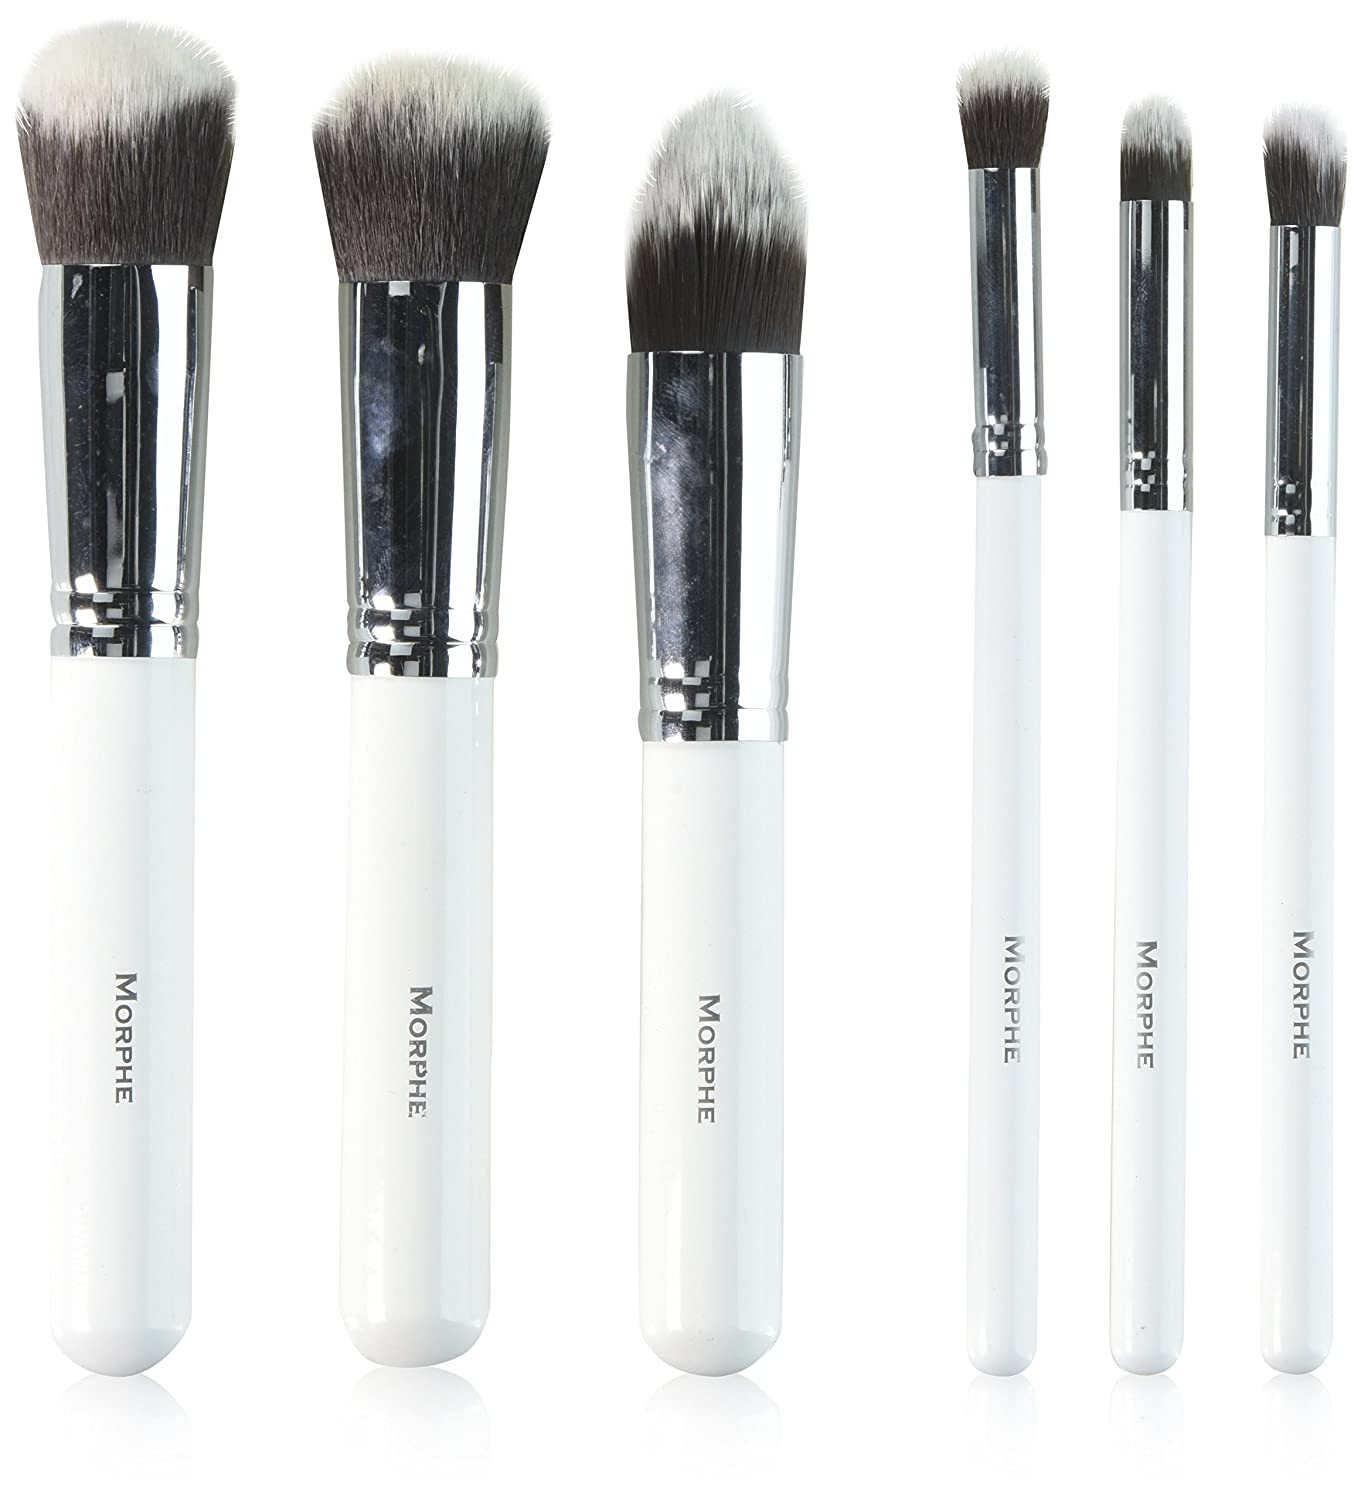 Amazon Com Morphe 6 Piece Deluxe Contour Brush Set Set 690 6 Pack Beauty Shop today and receive tomorrow! morphe 6 piece deluxe contour brush set set 690 6 pack